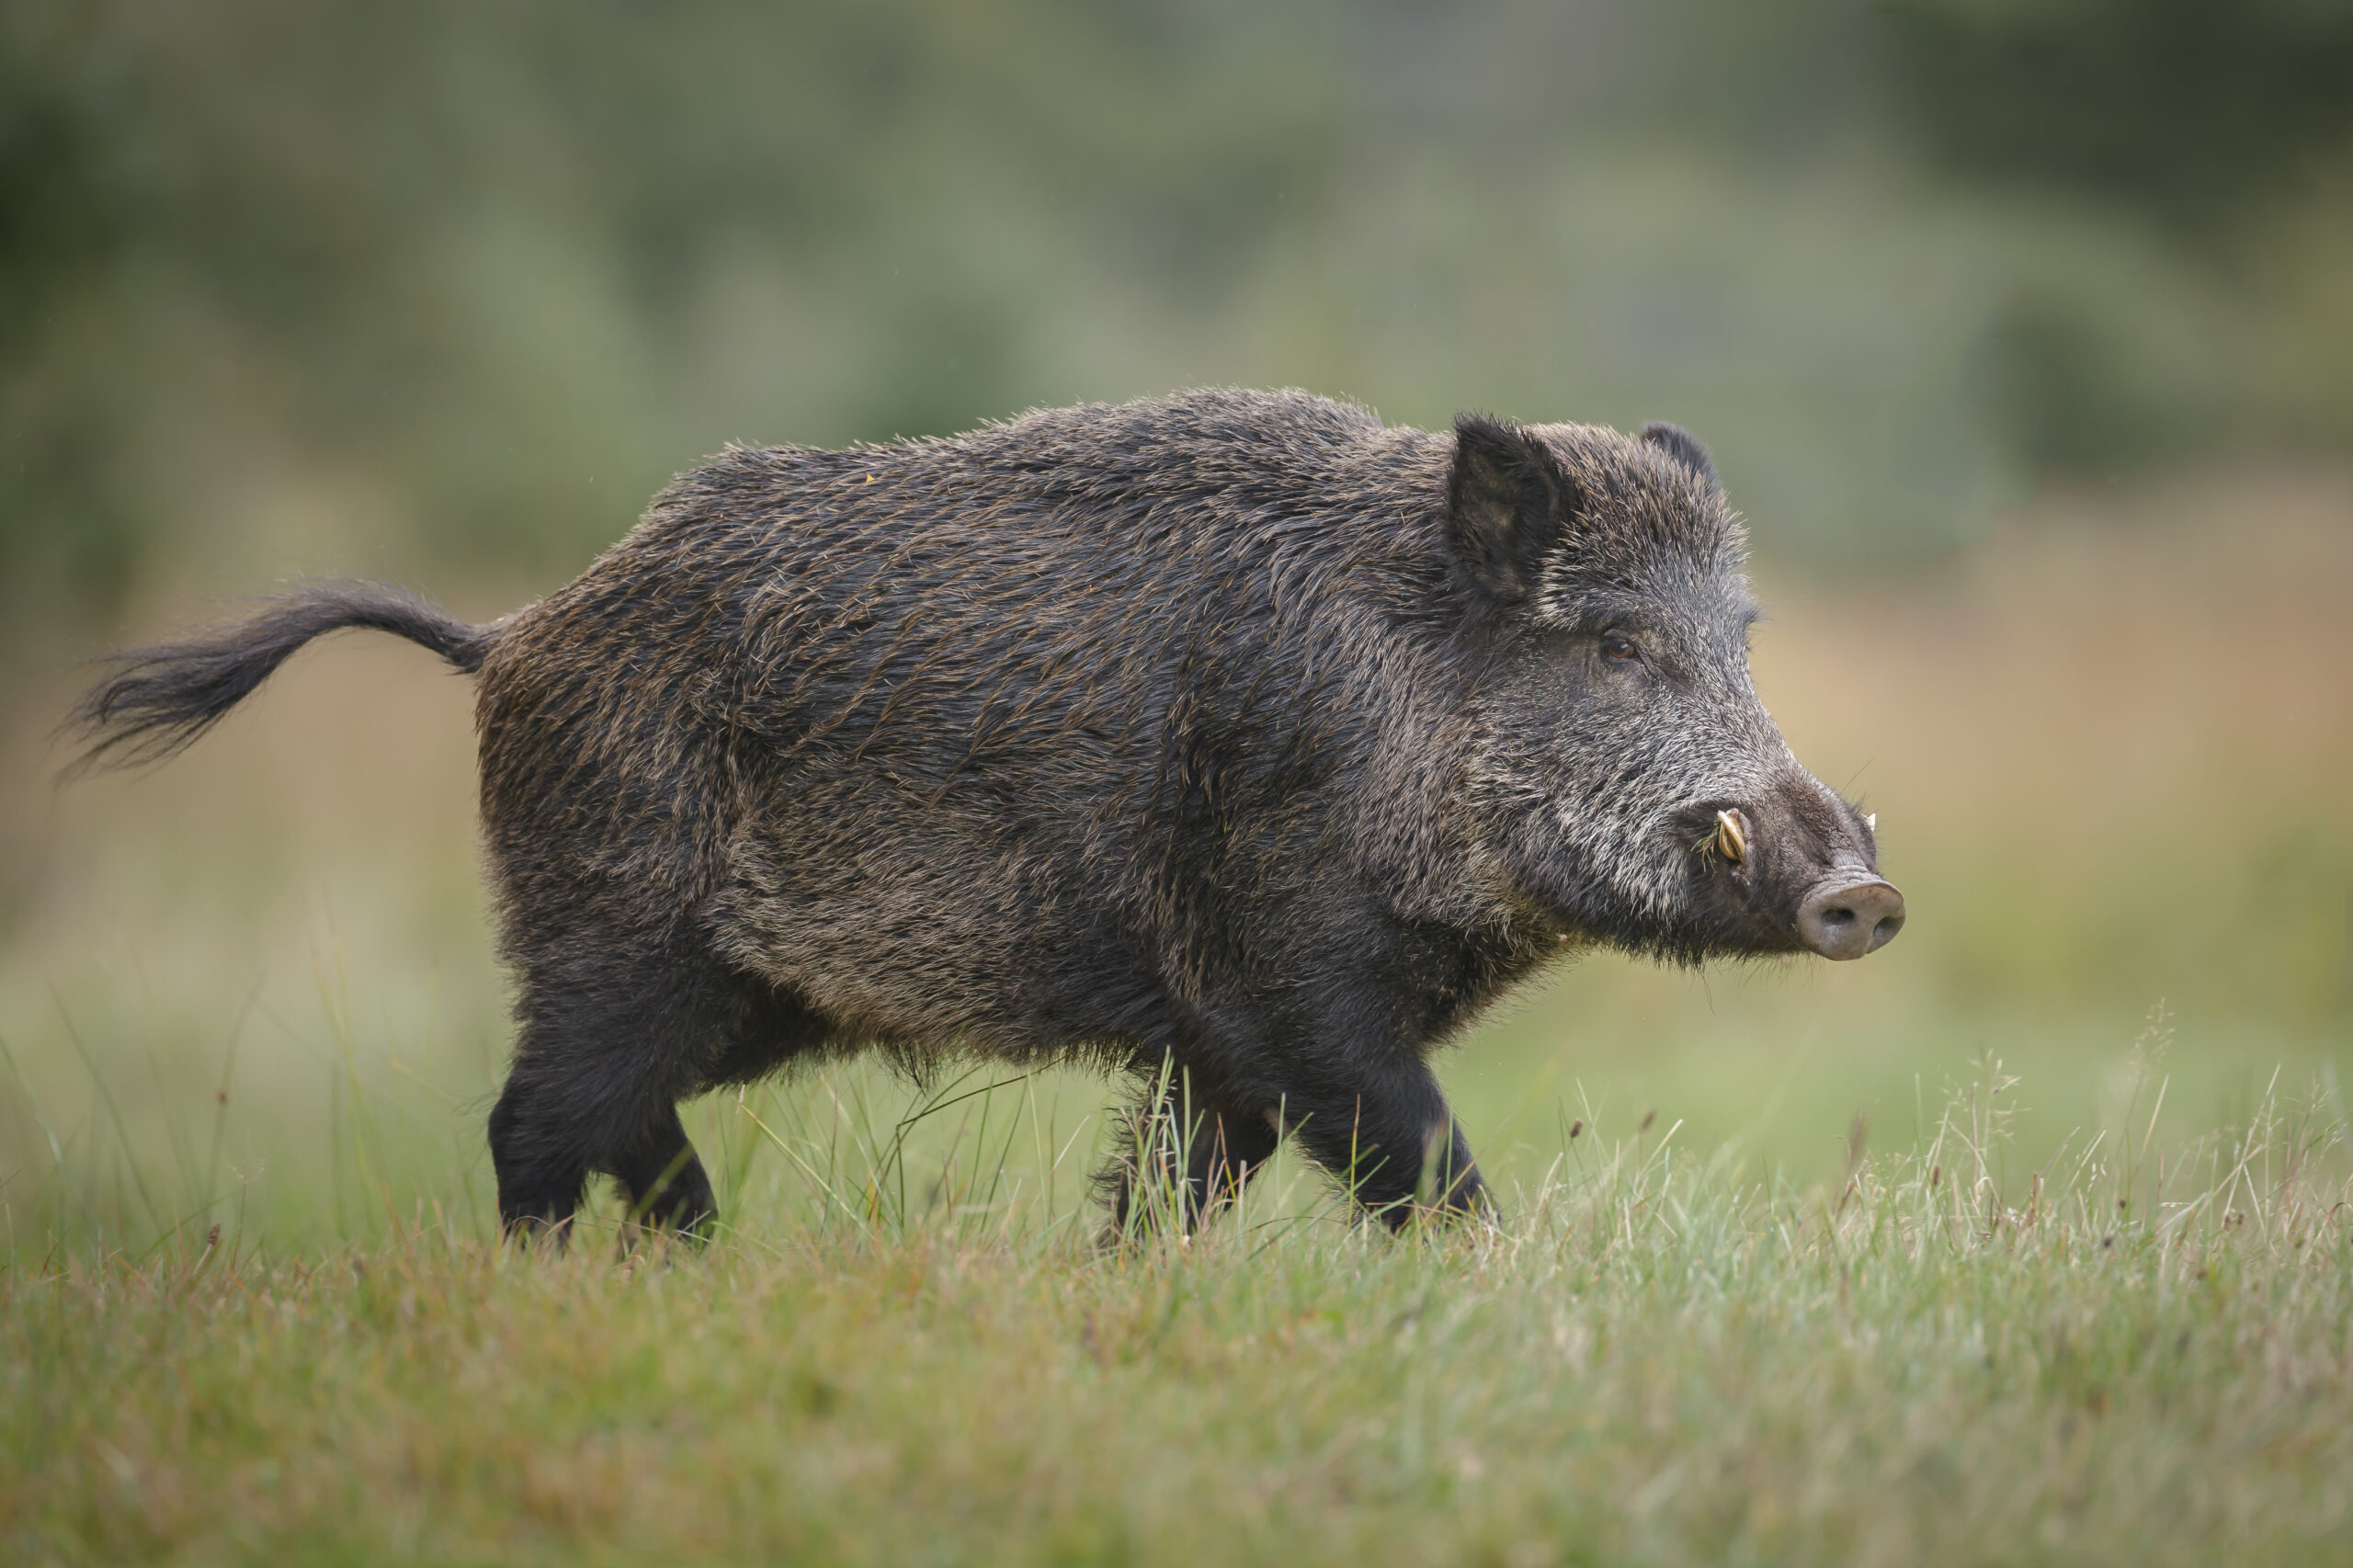 Wild boar in forest clearing